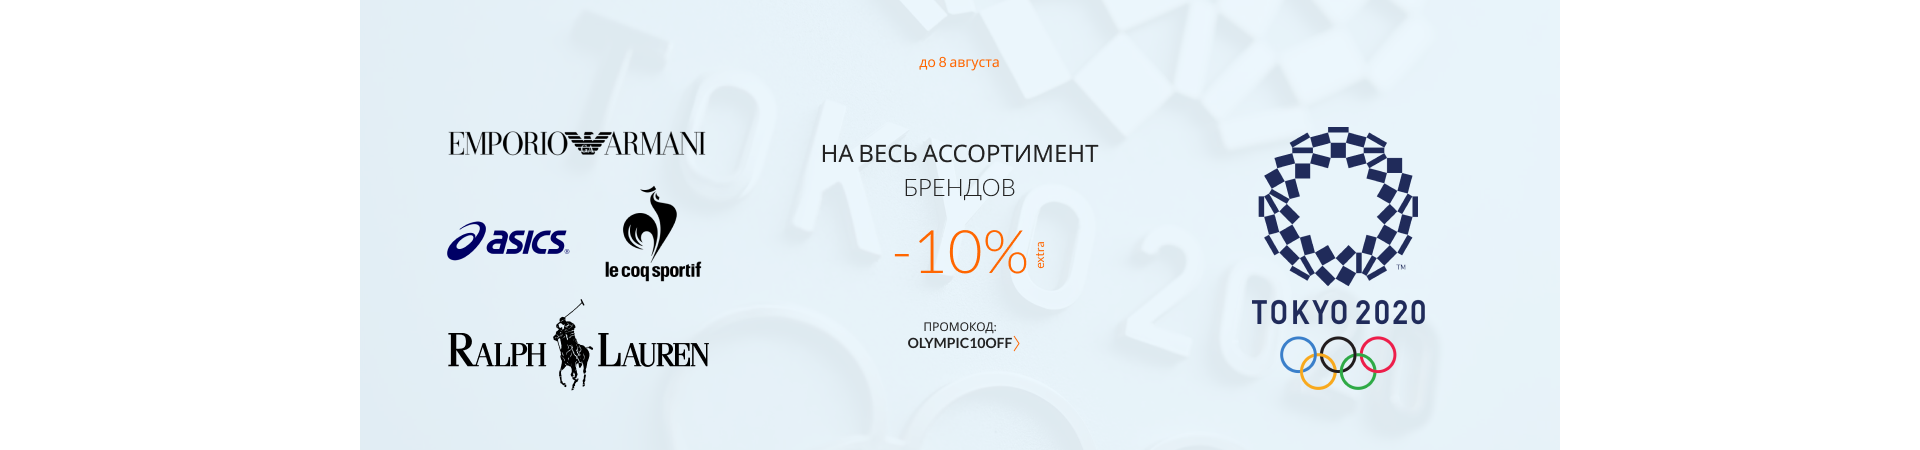 Olympic10off